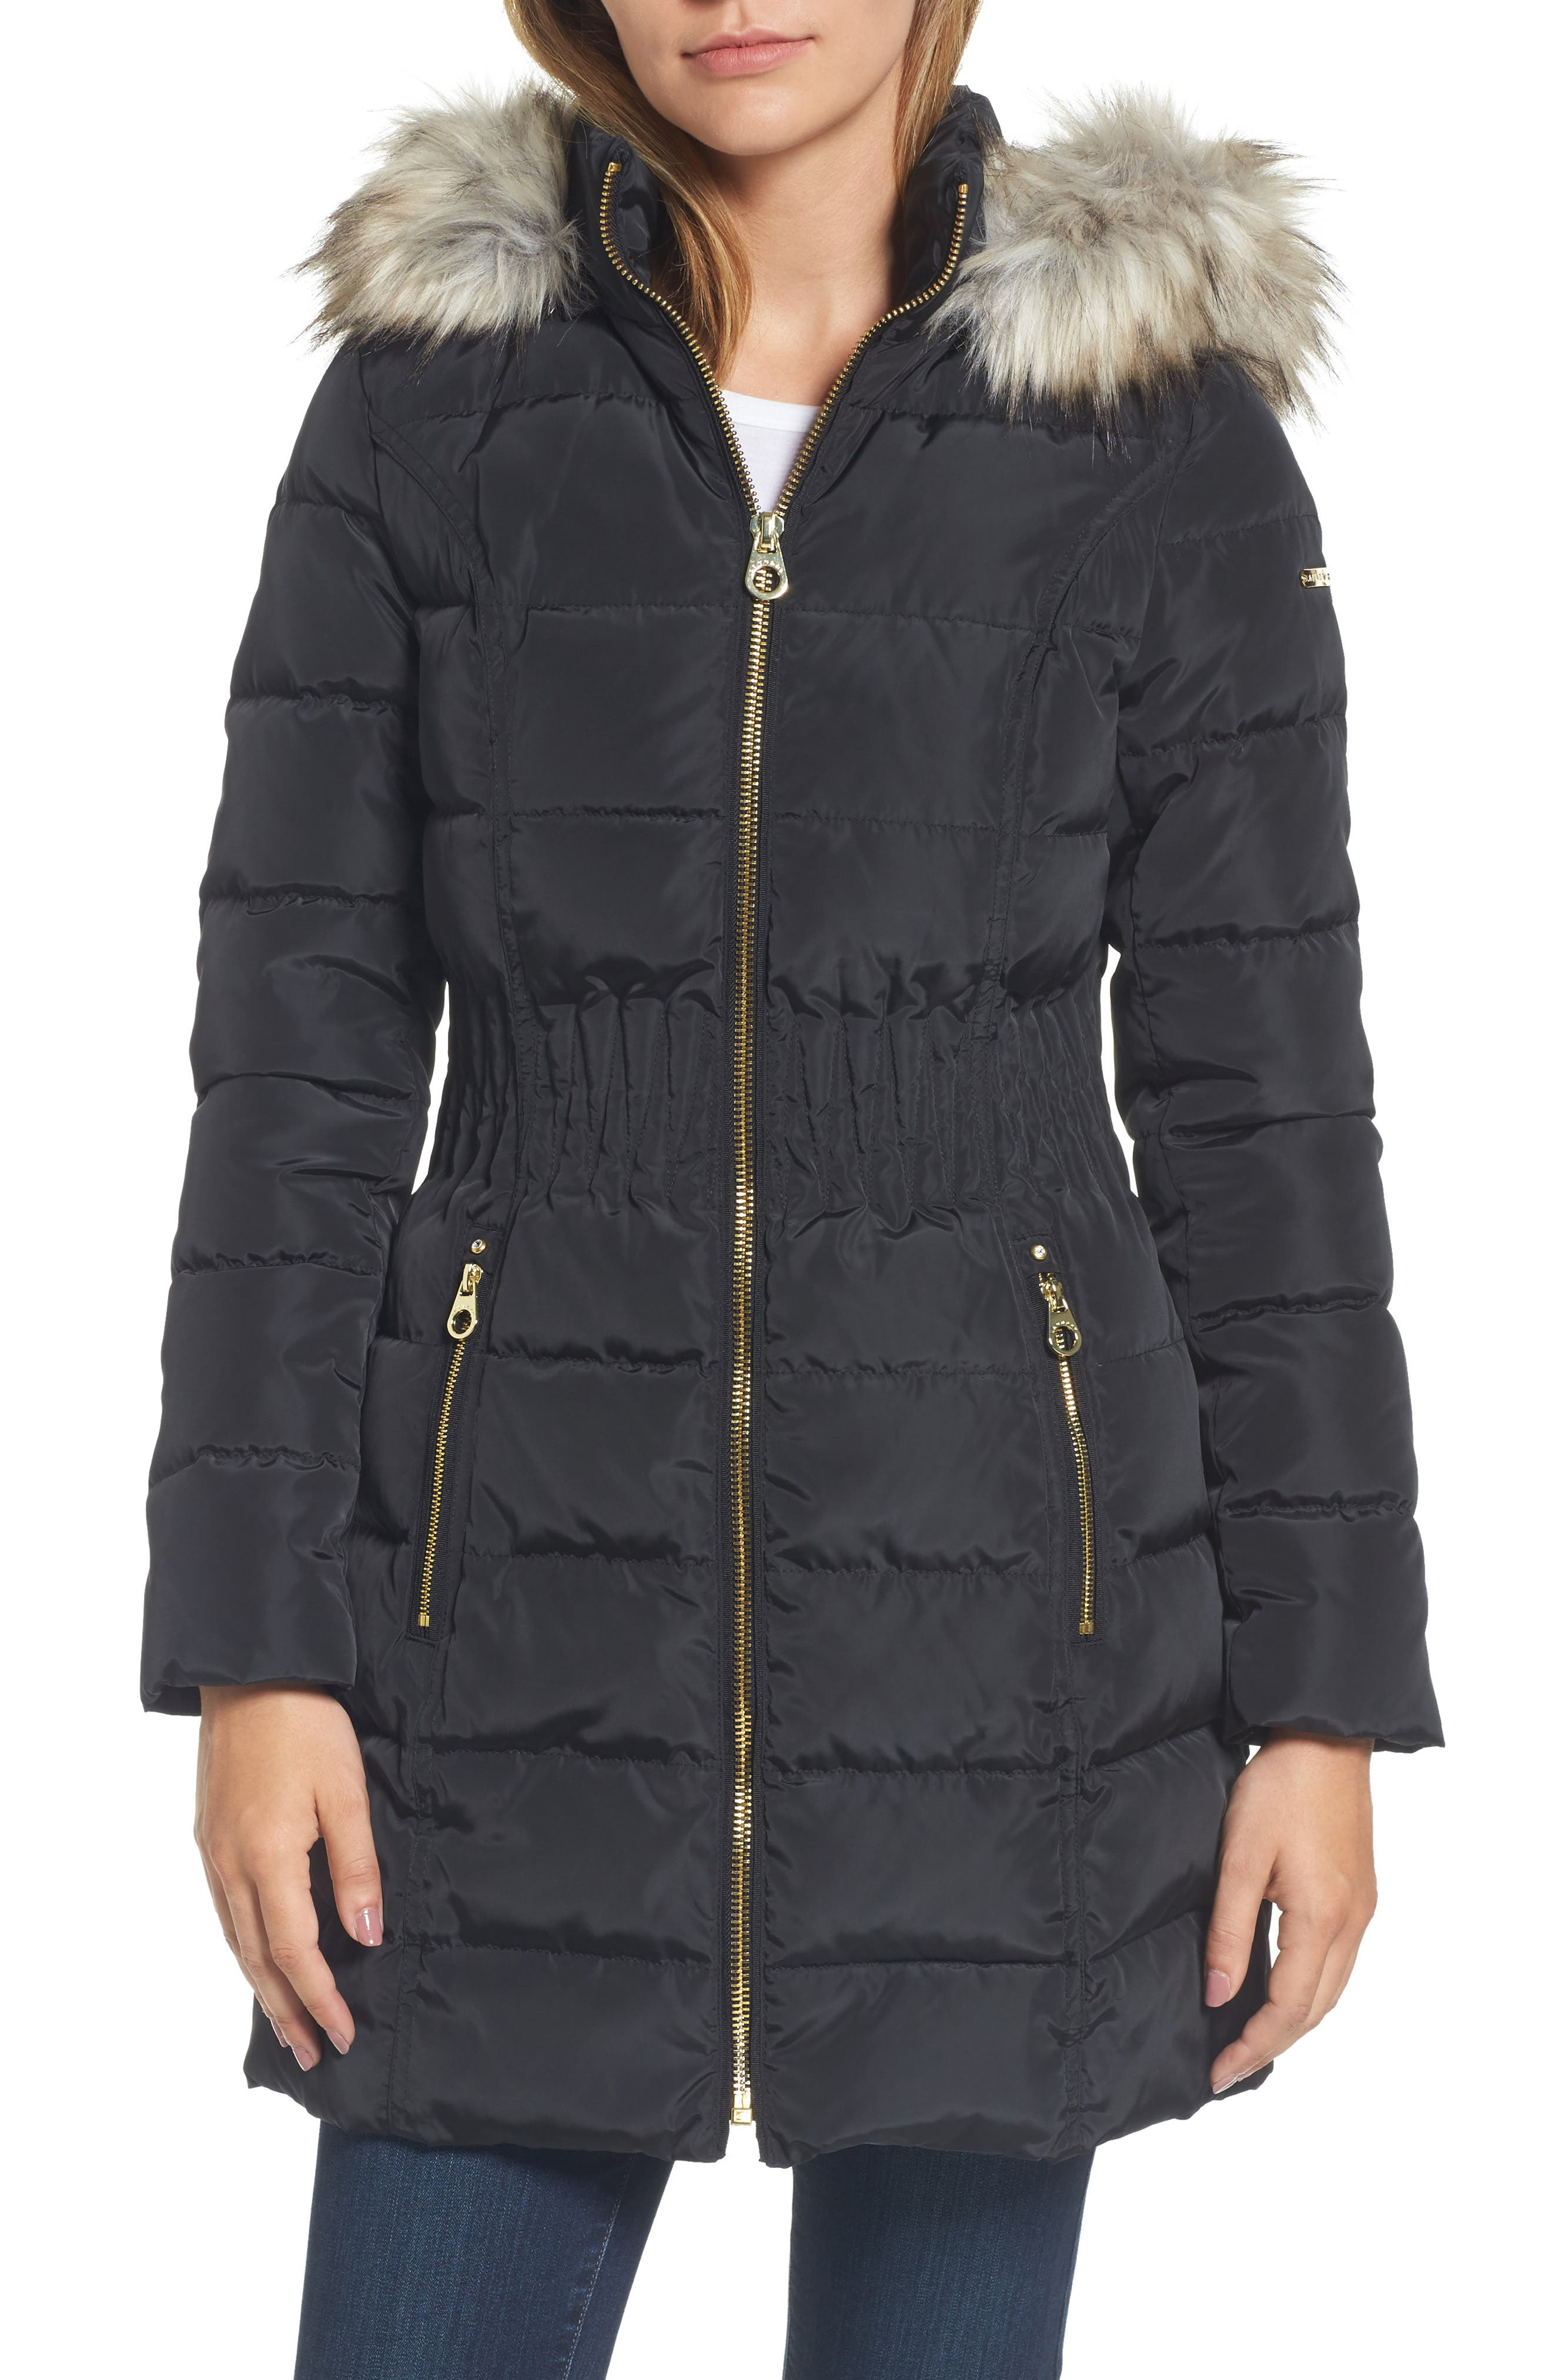 Hooded Quilted Jacket with Faux Fur Trim,                             Main thumbnail 1, color,                             001